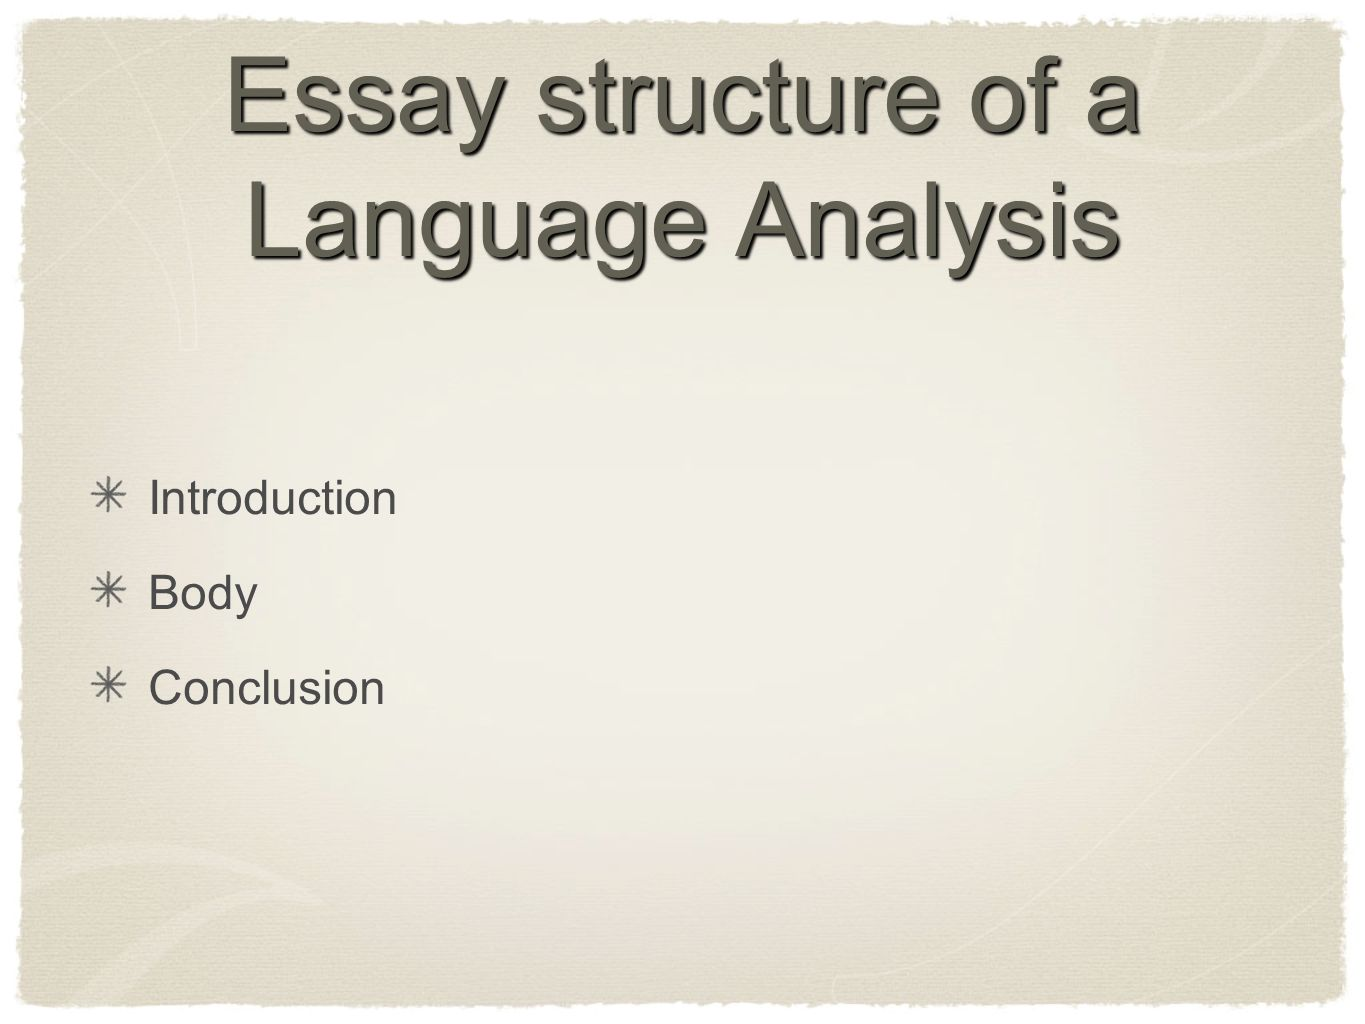 using language to persuade essay structure Understanding how to structure and write a language analysis is a useful skill that is to prepare yourself to write a language analysis essay for you to fully immerse yourself in the source and uncover all of the moments in the source in which the author is using language to persuade.